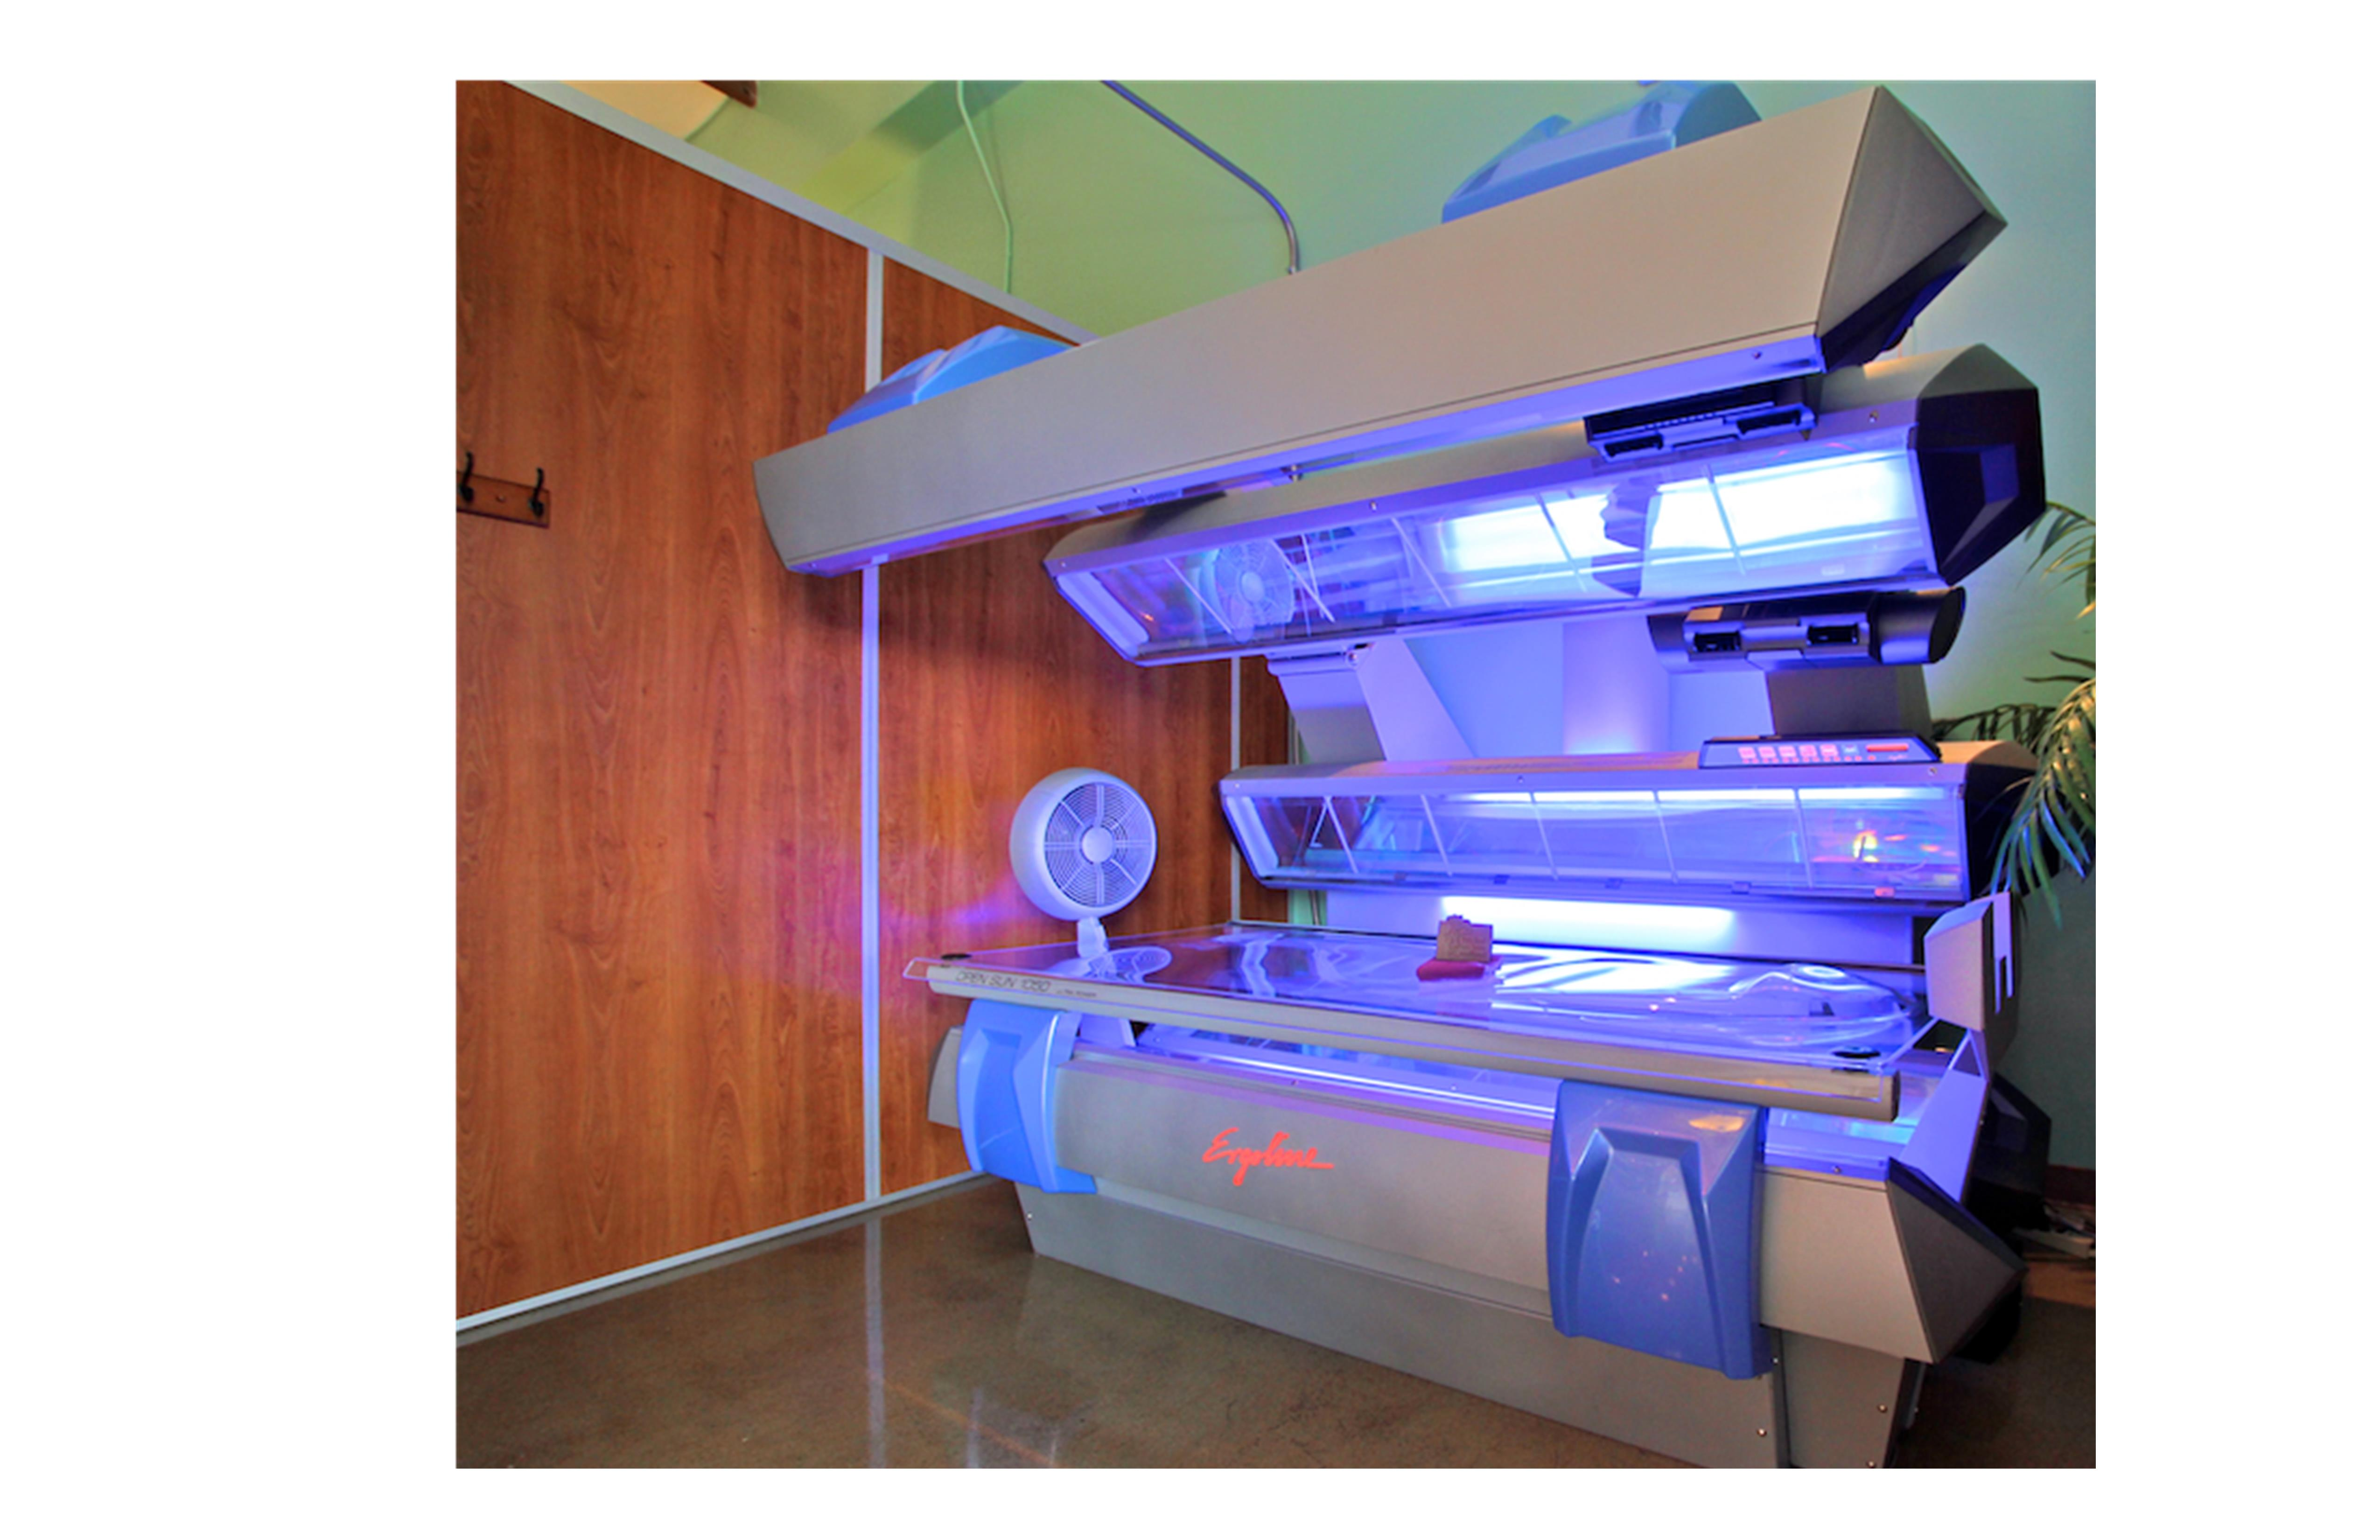 tropitana ist magazine the friedrichsens made a huge investment to create a premiere tanning salon high end equipment and products so they want their business operated by a